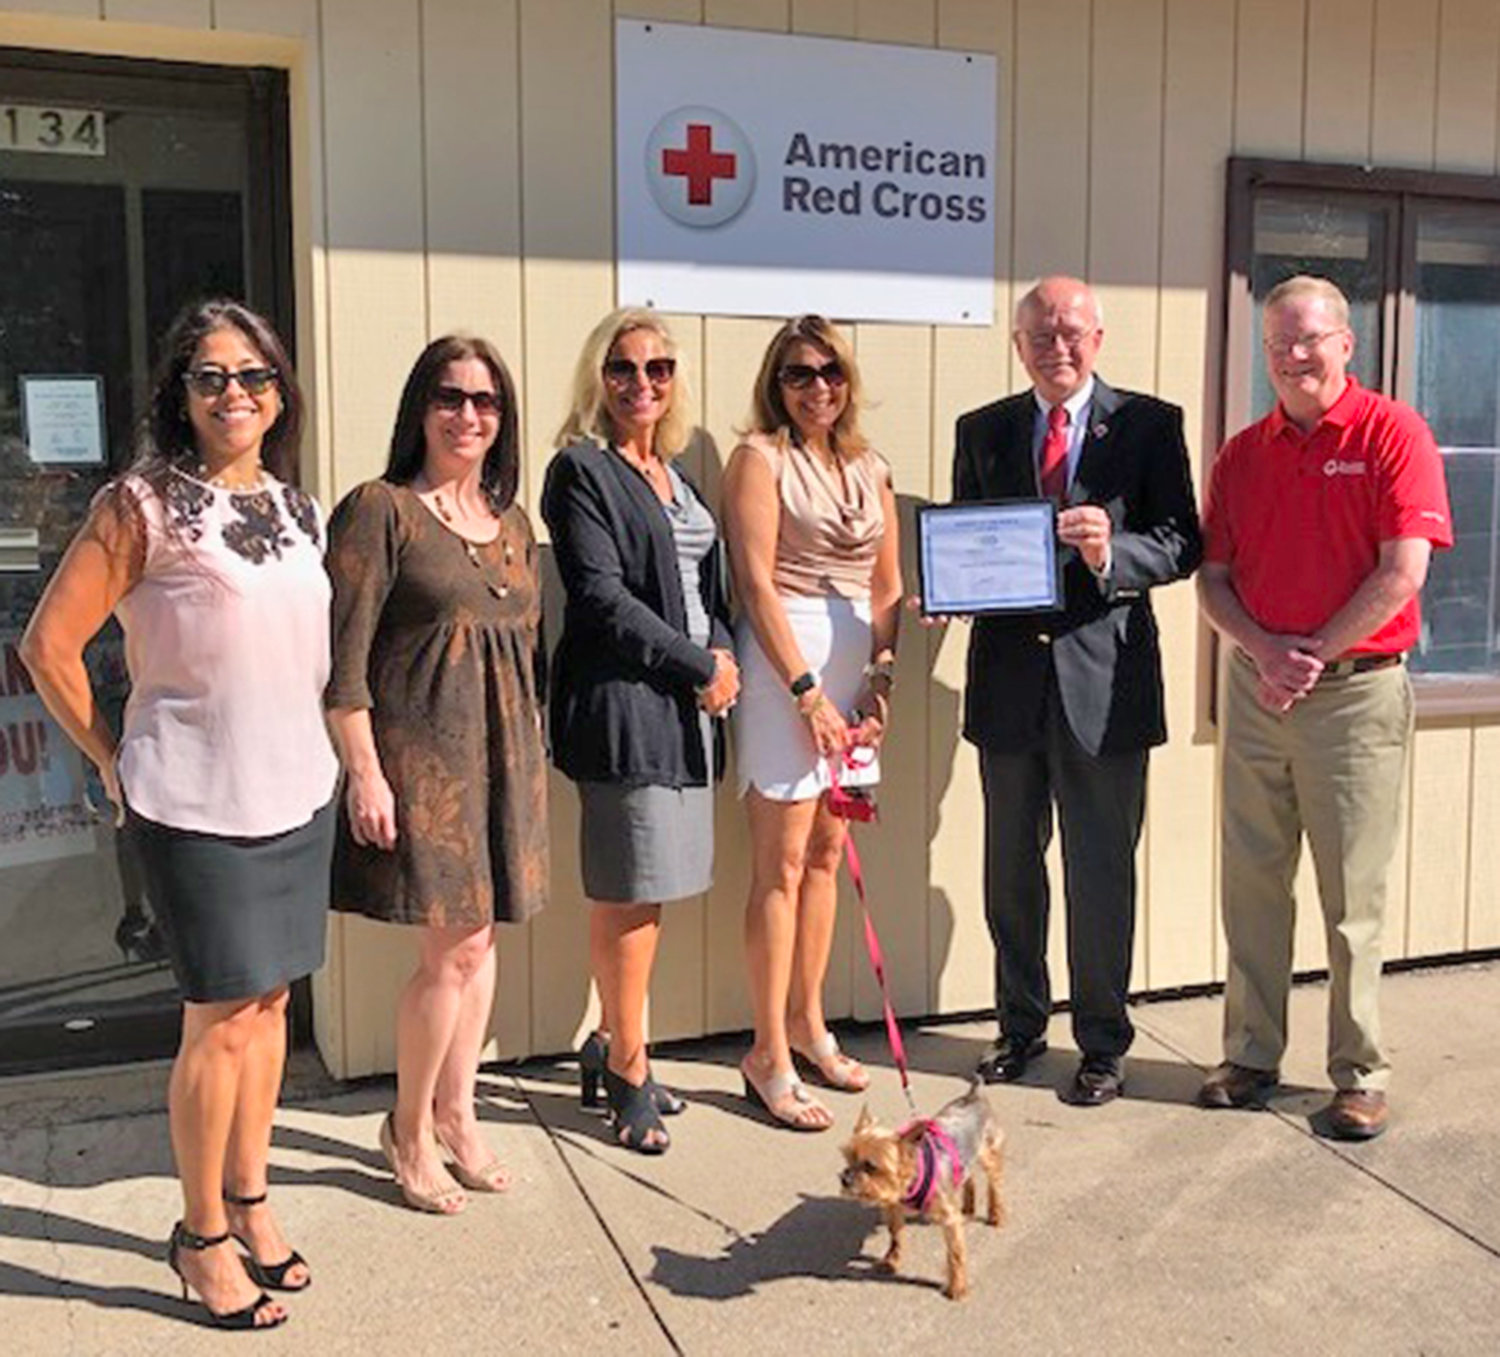 THANKS! — Members of the Oneida Chamber of Commerce pose with American Red Cross officials in Oneida recently.  The chamber has honored the chapter as its Business of the Month.